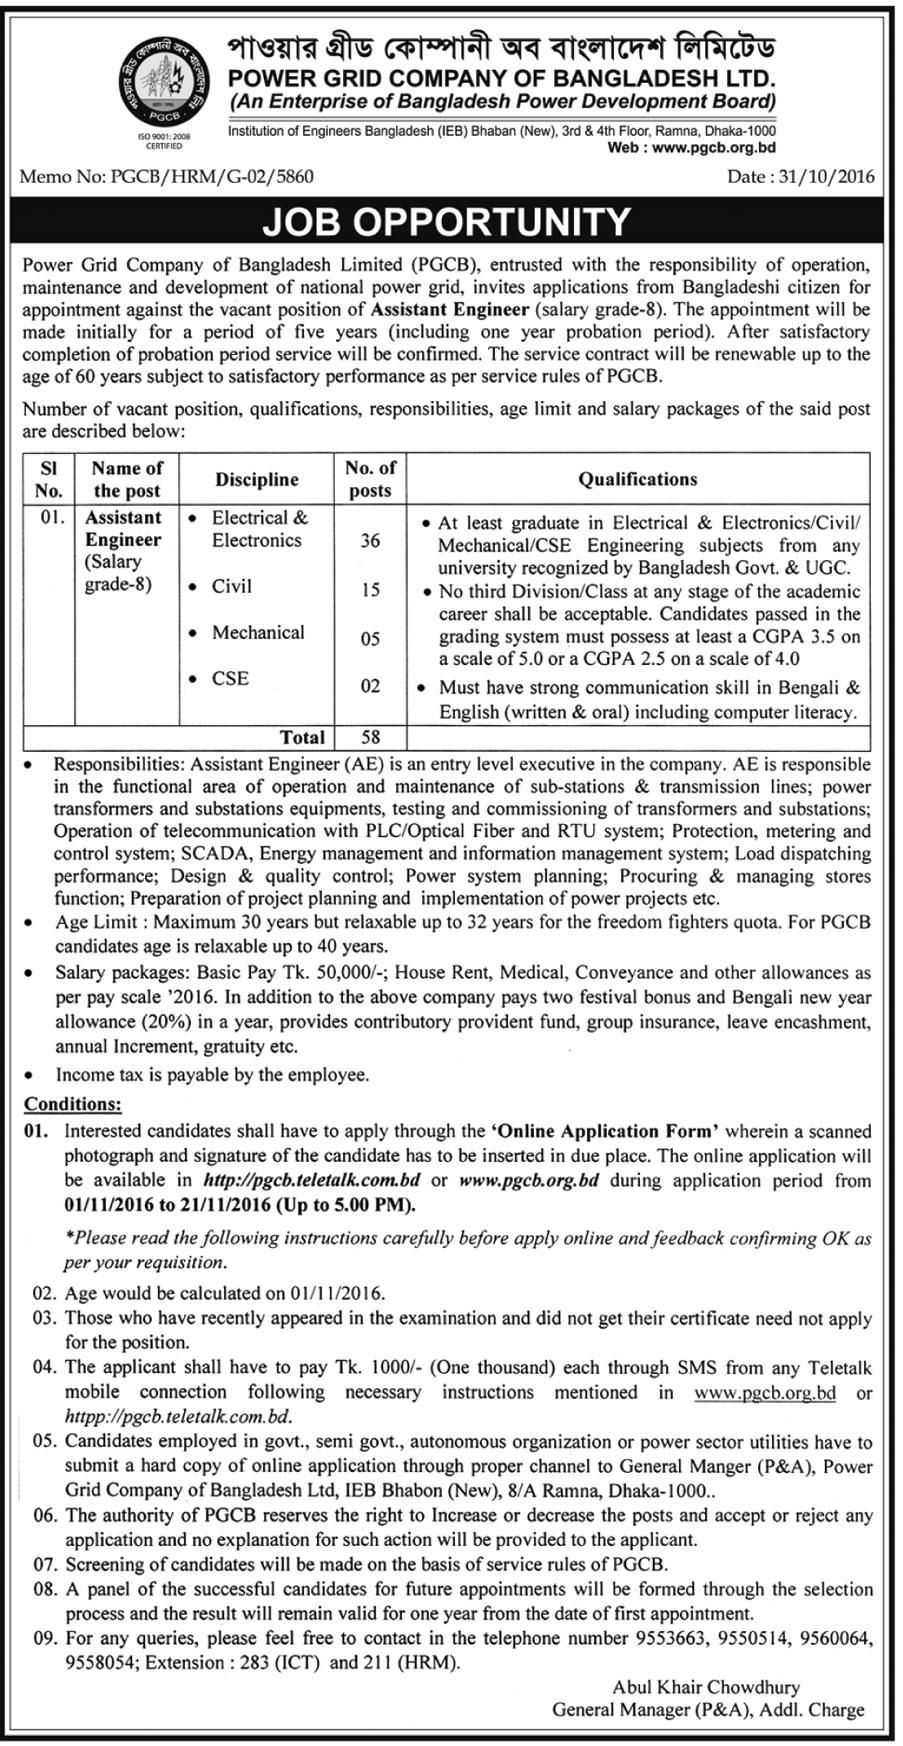 Power Grid Company of Bangladesh Limited (PGCB) Job